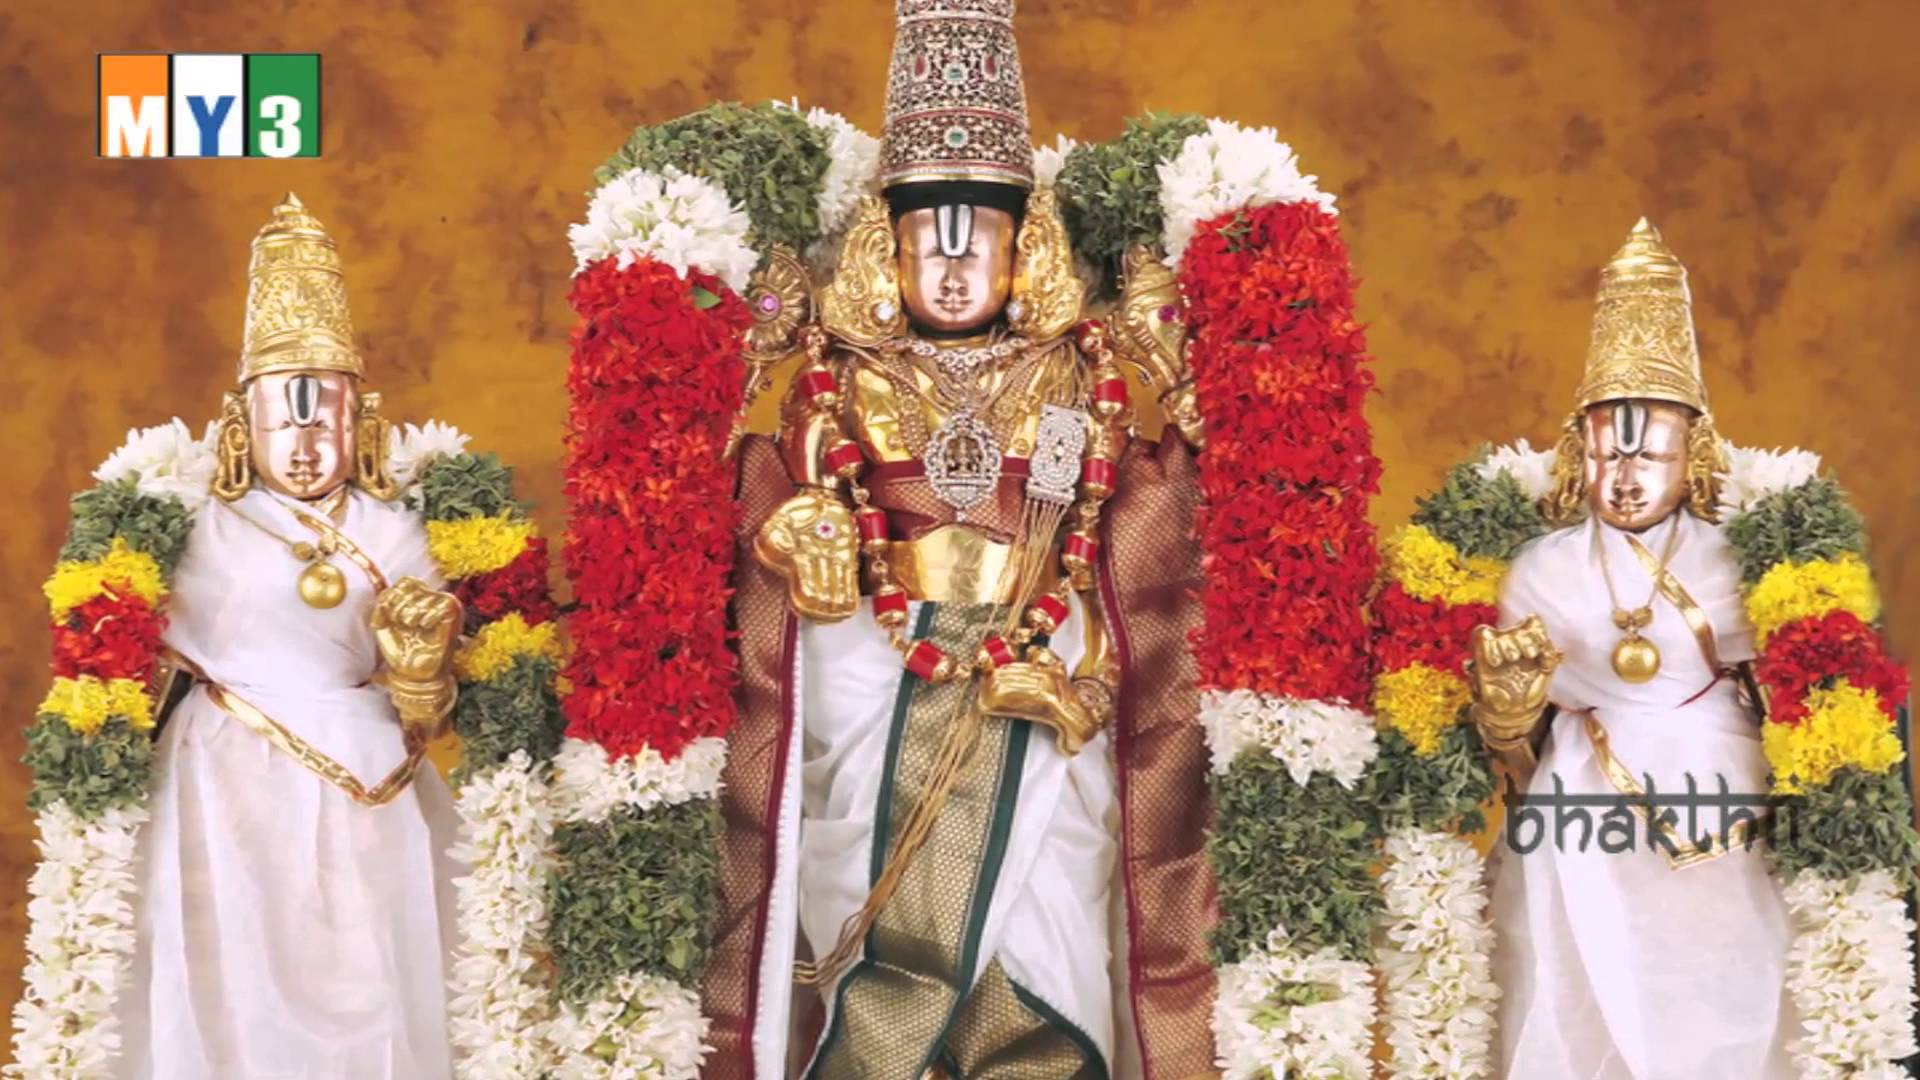 Lord Venkateswara Hd Wallpapers Lord Venkateswara Sridevi Bhudevi 780204 Hd Wallpaper Backgrounds Download